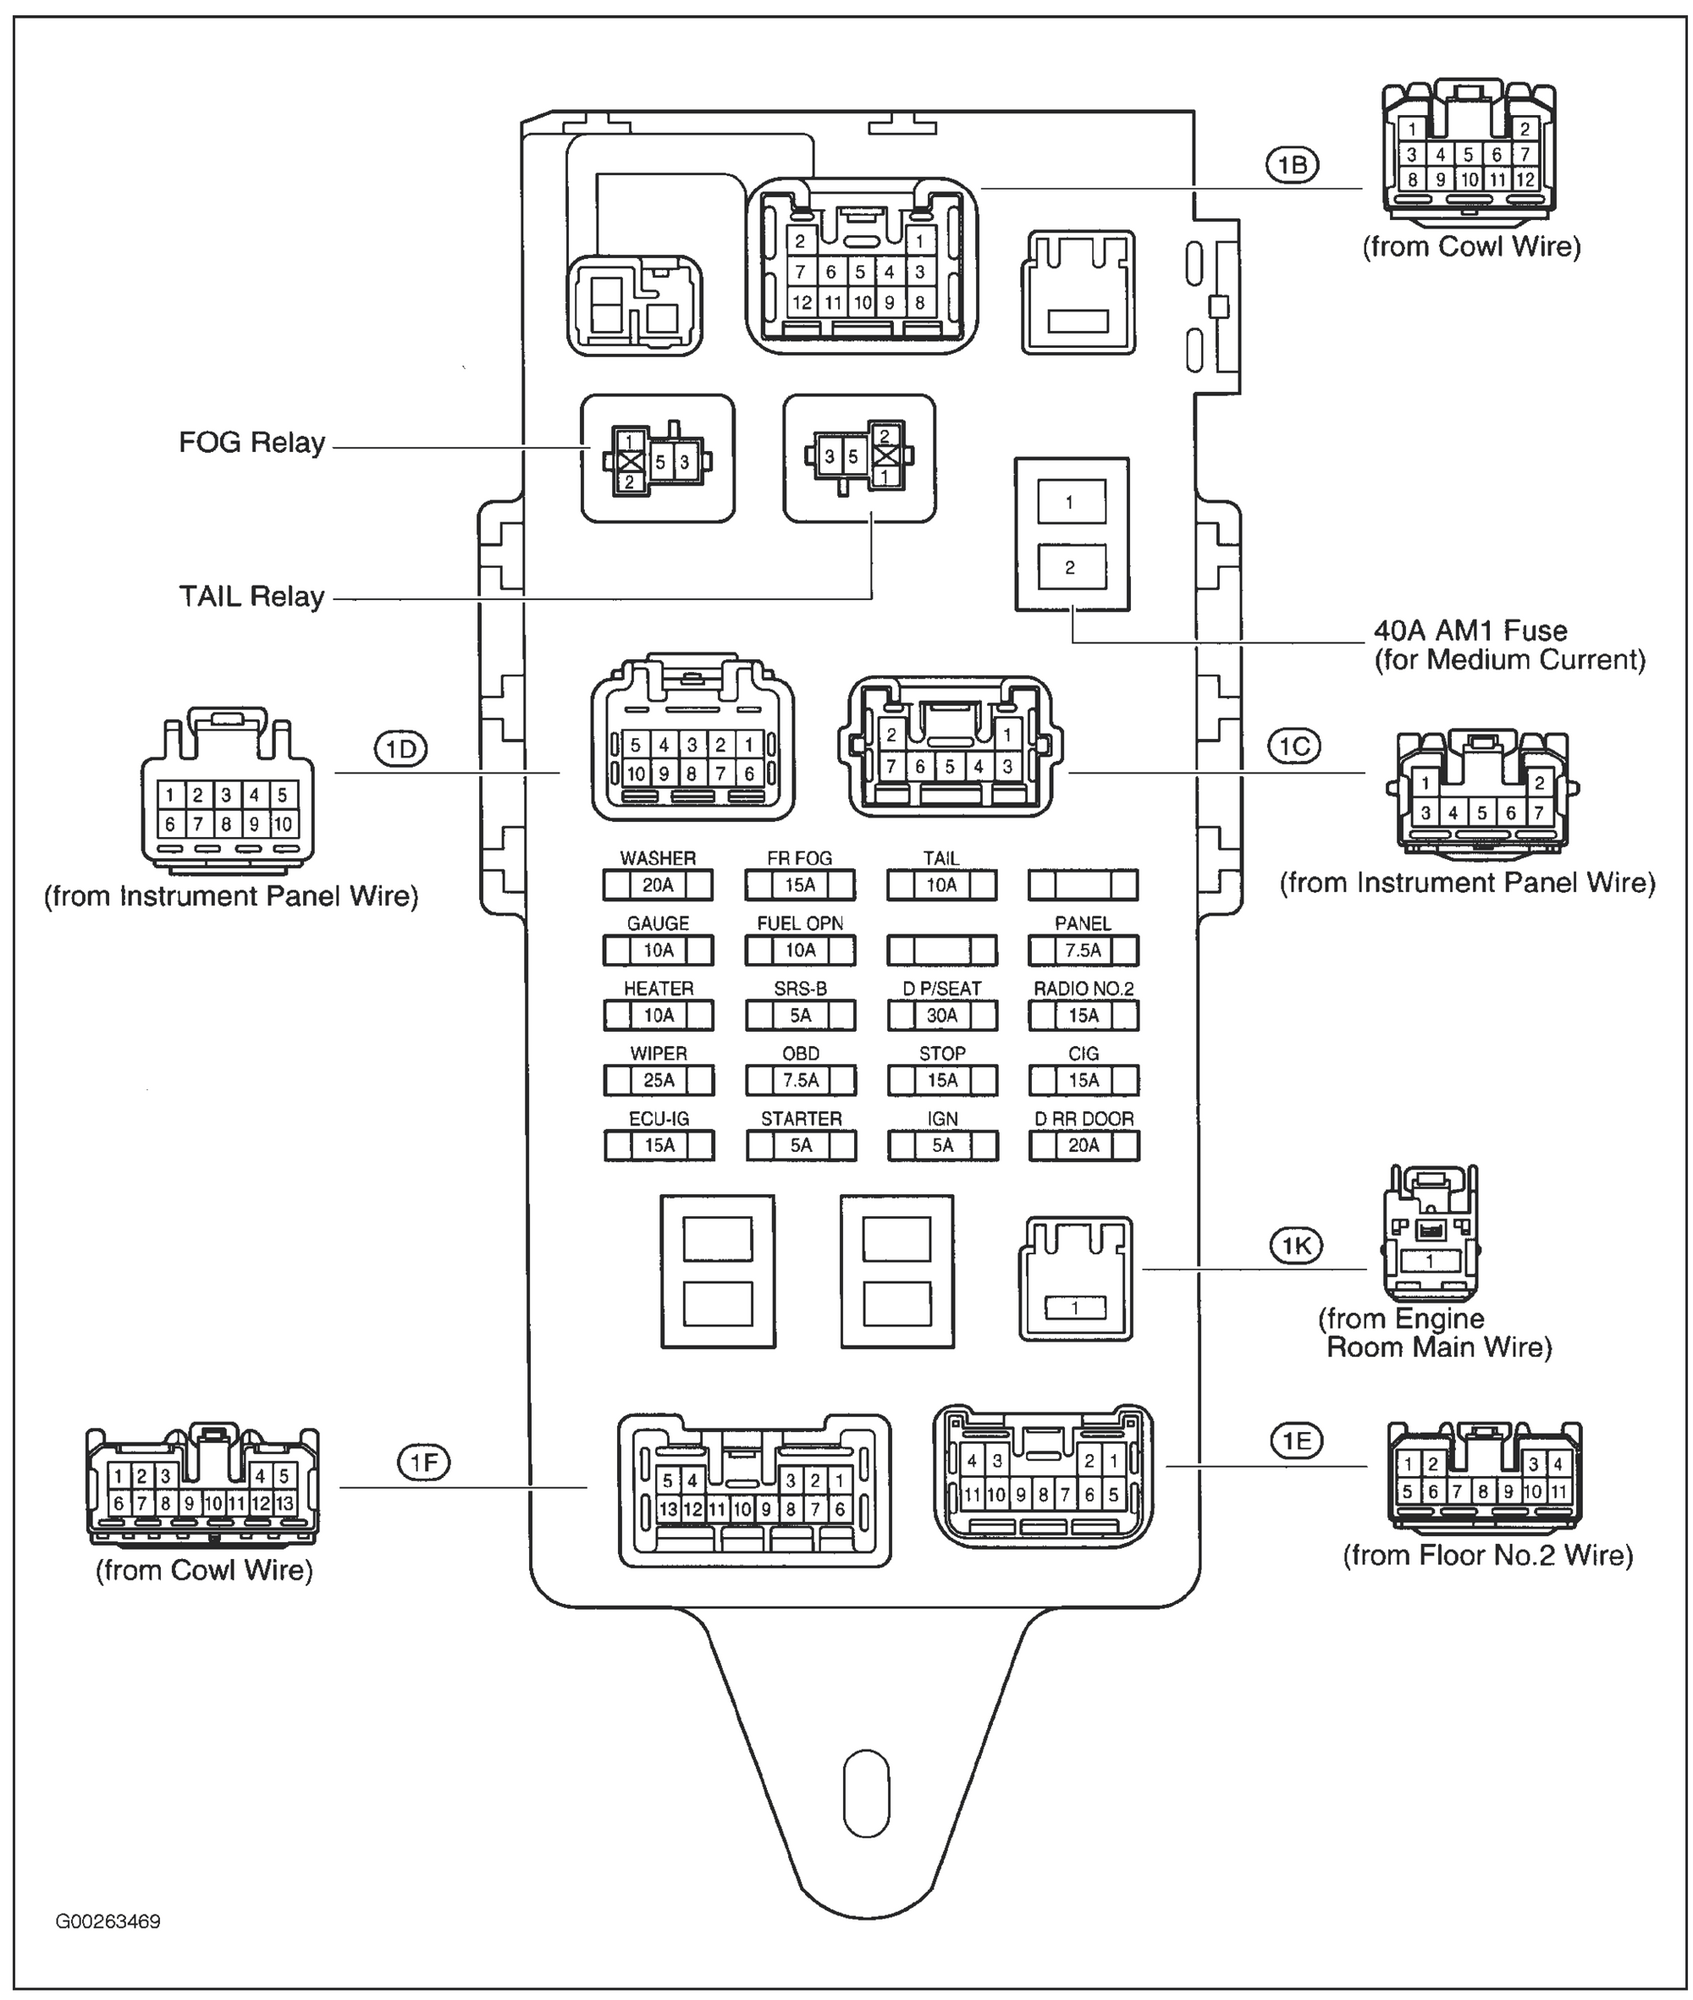 Progressive Racing Cdi Wiring Diagram | #1 Wiring Diagram Source on